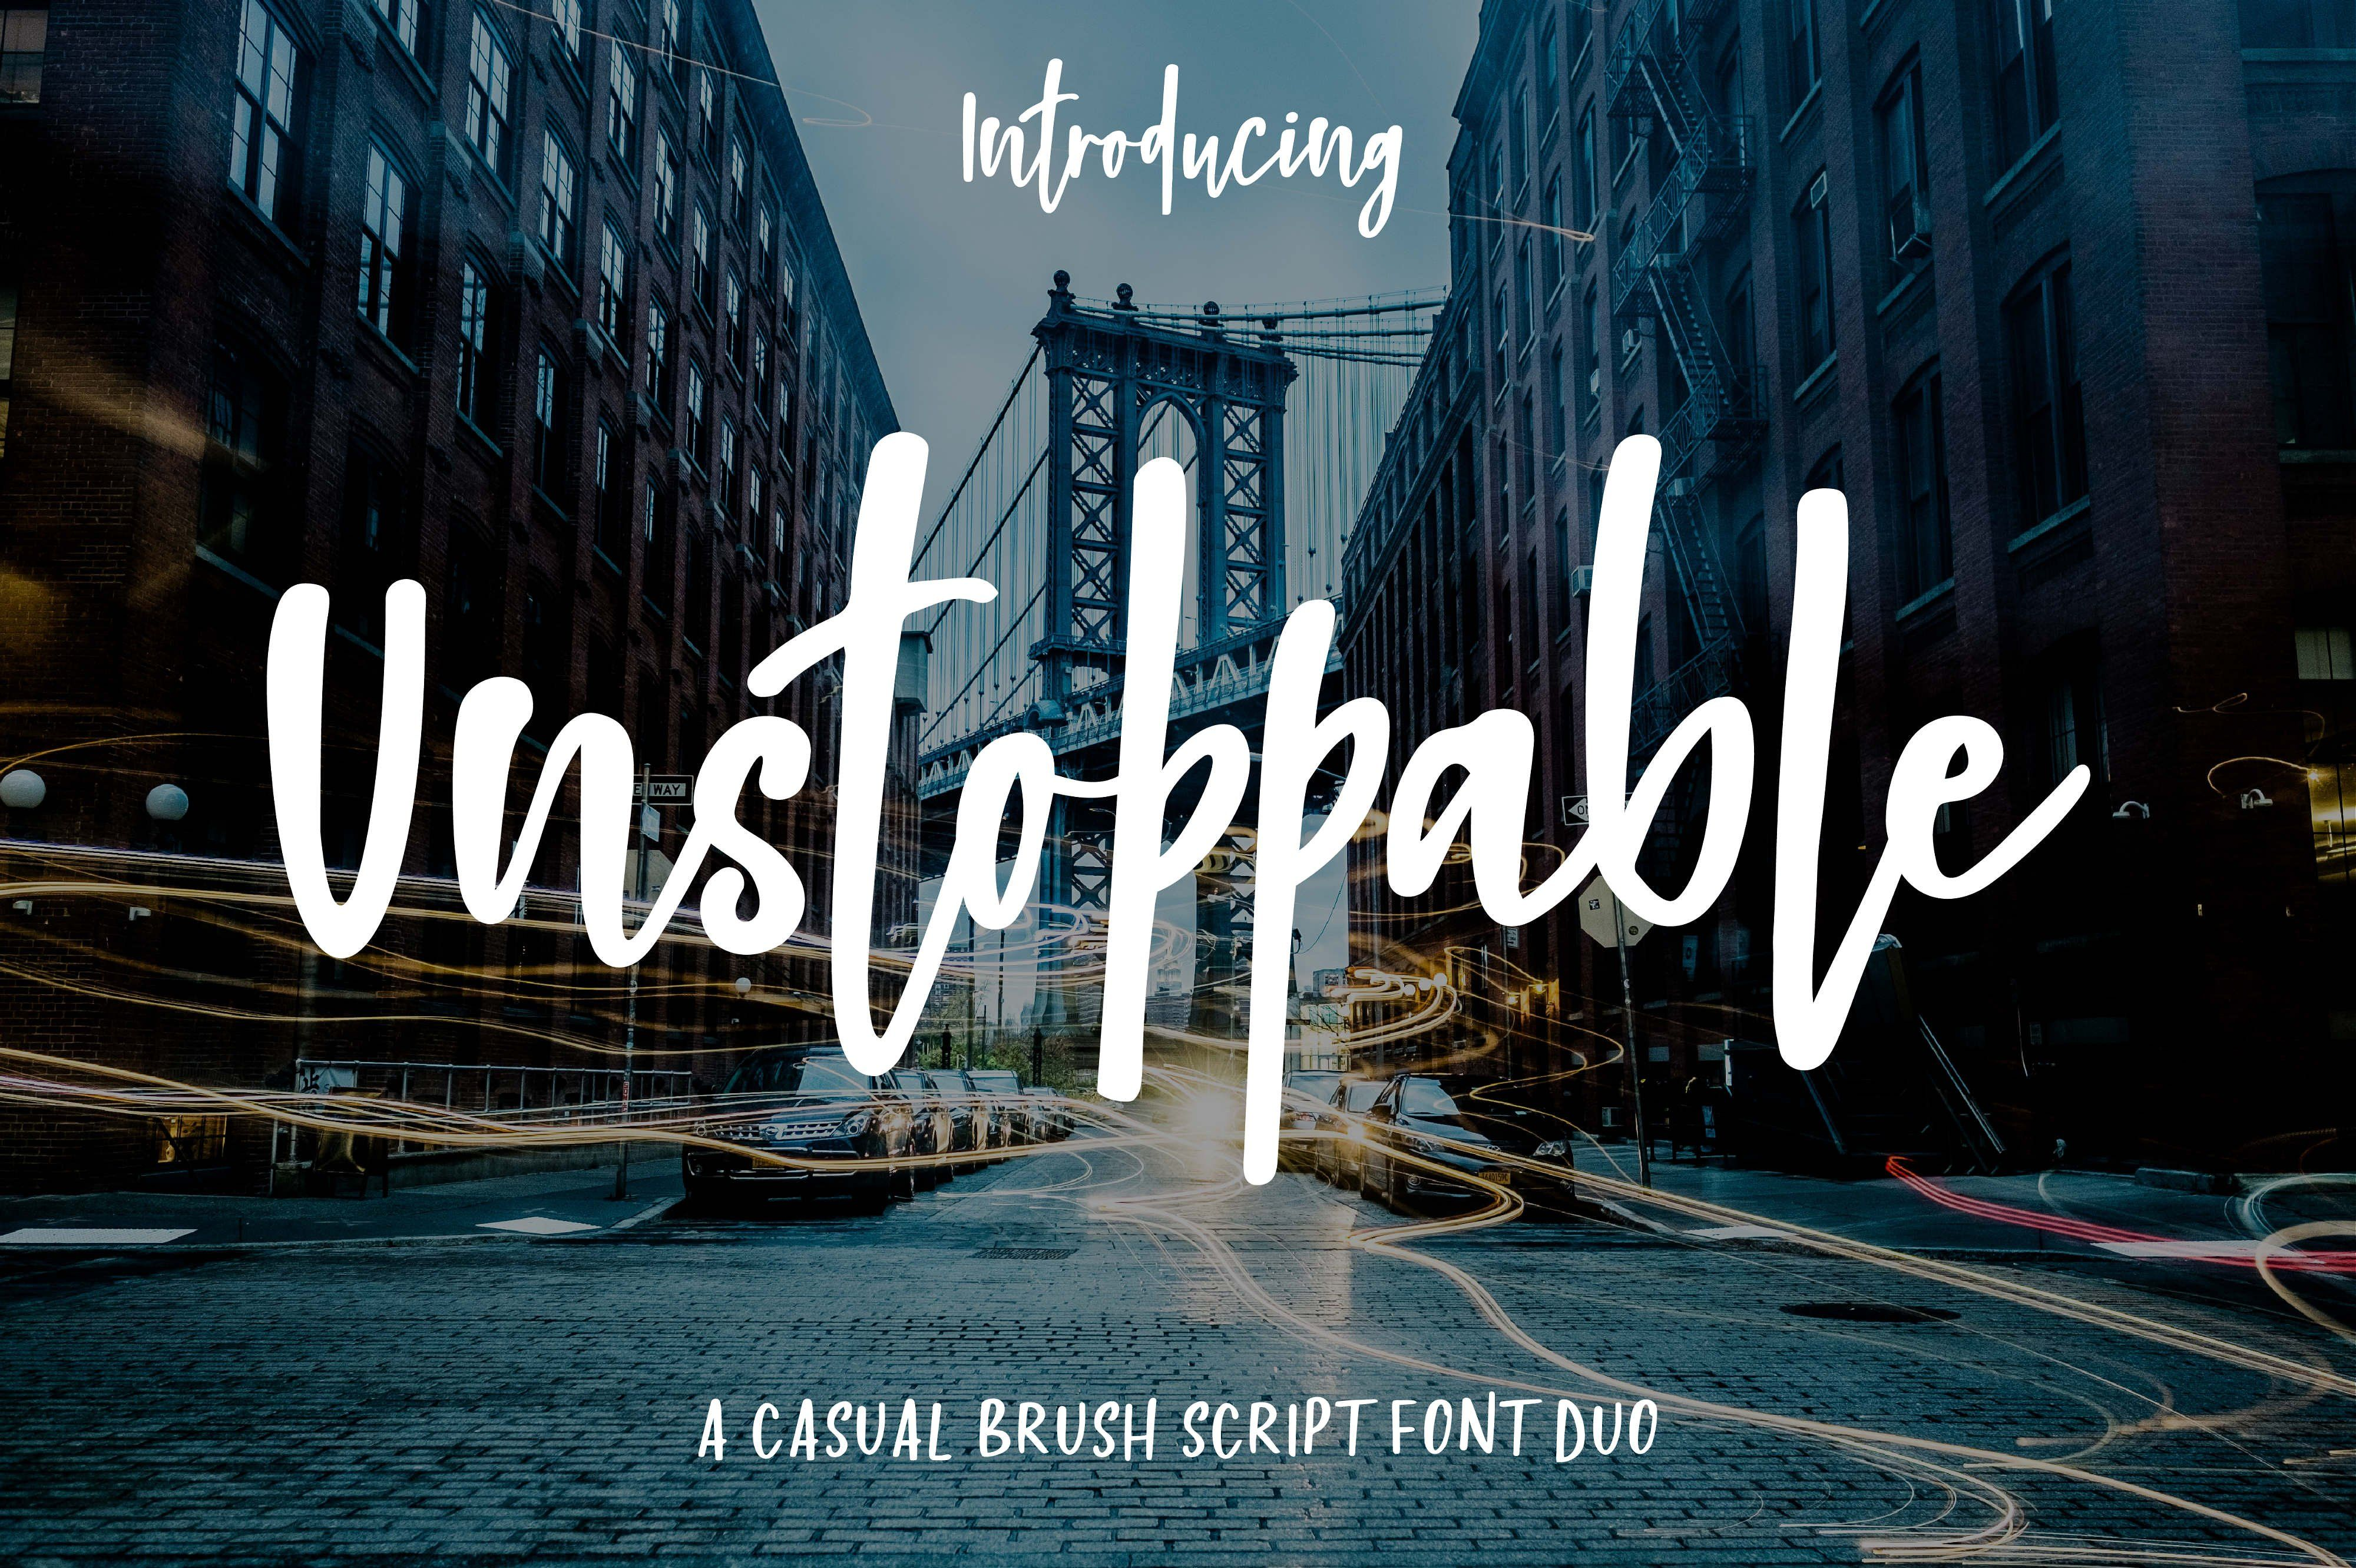 cursive fonts for wedding cards%0A Introducing Unstoppable  a casual brush script font duo that comes with a  whimsical bounce script